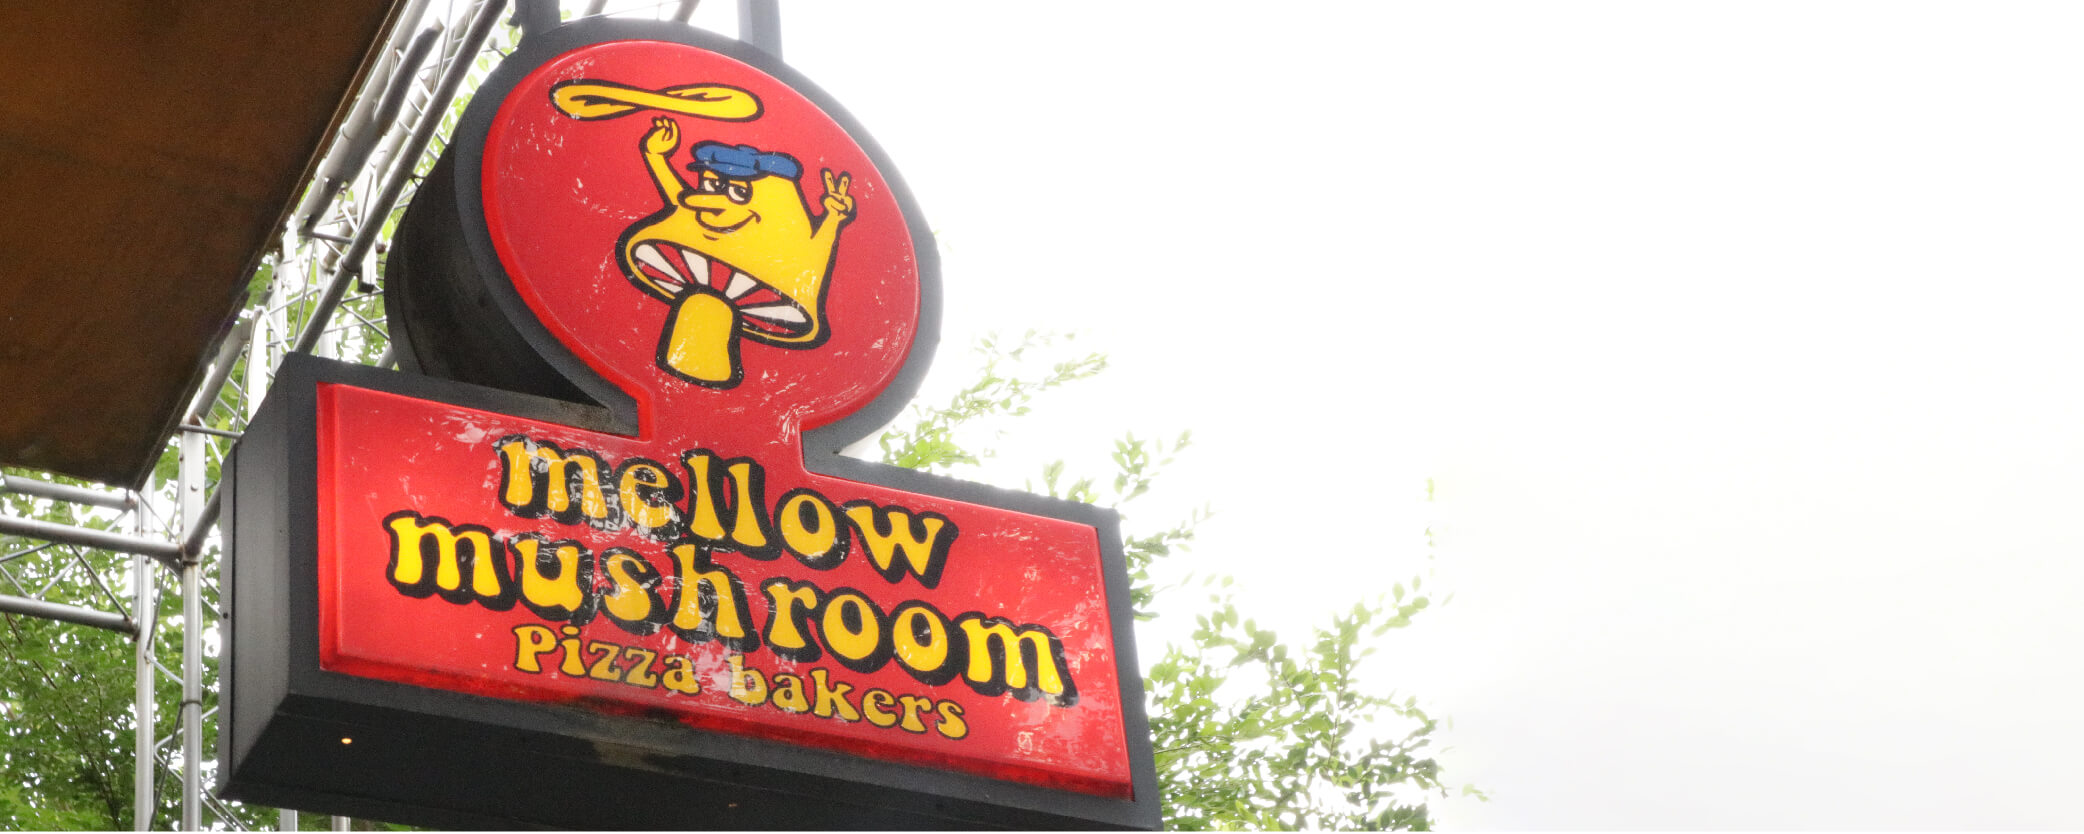 Mellow Mushroom Downtown Atlanta - patio signage under yellow awning